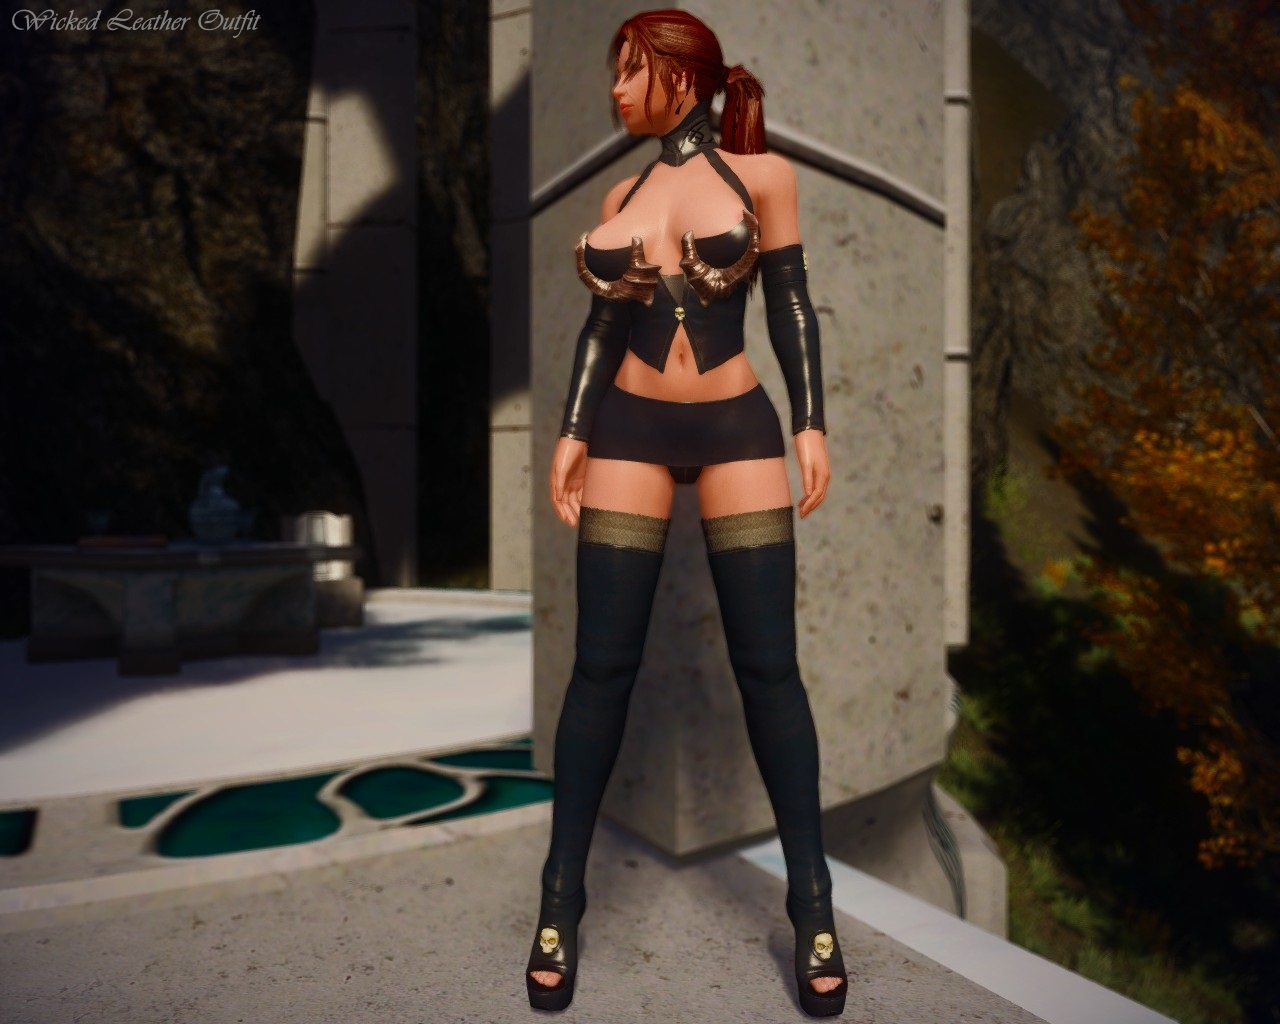 [Melodic] Wicked Leather Outfit 00.jpg